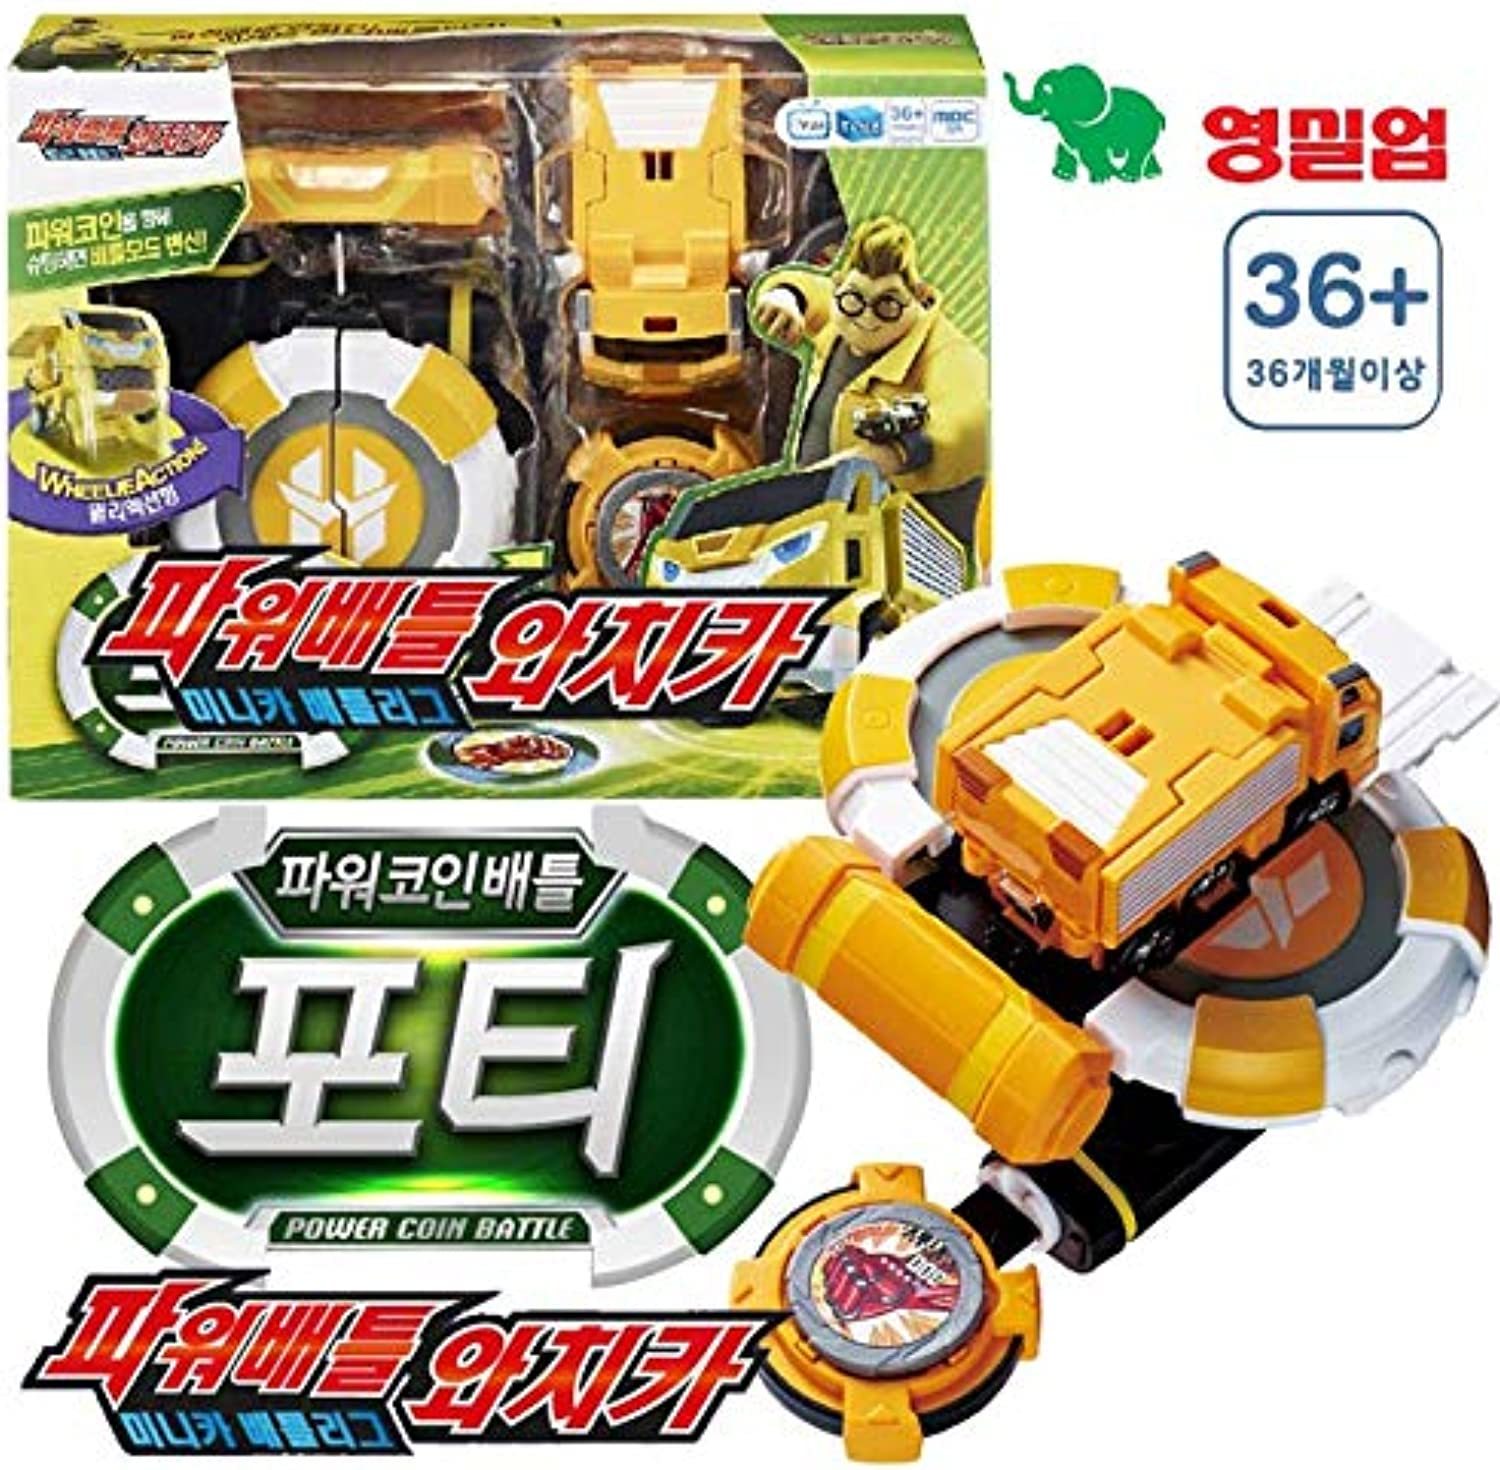 [Toy] N Youngtoys Watch Car Power Coin Battle Porty